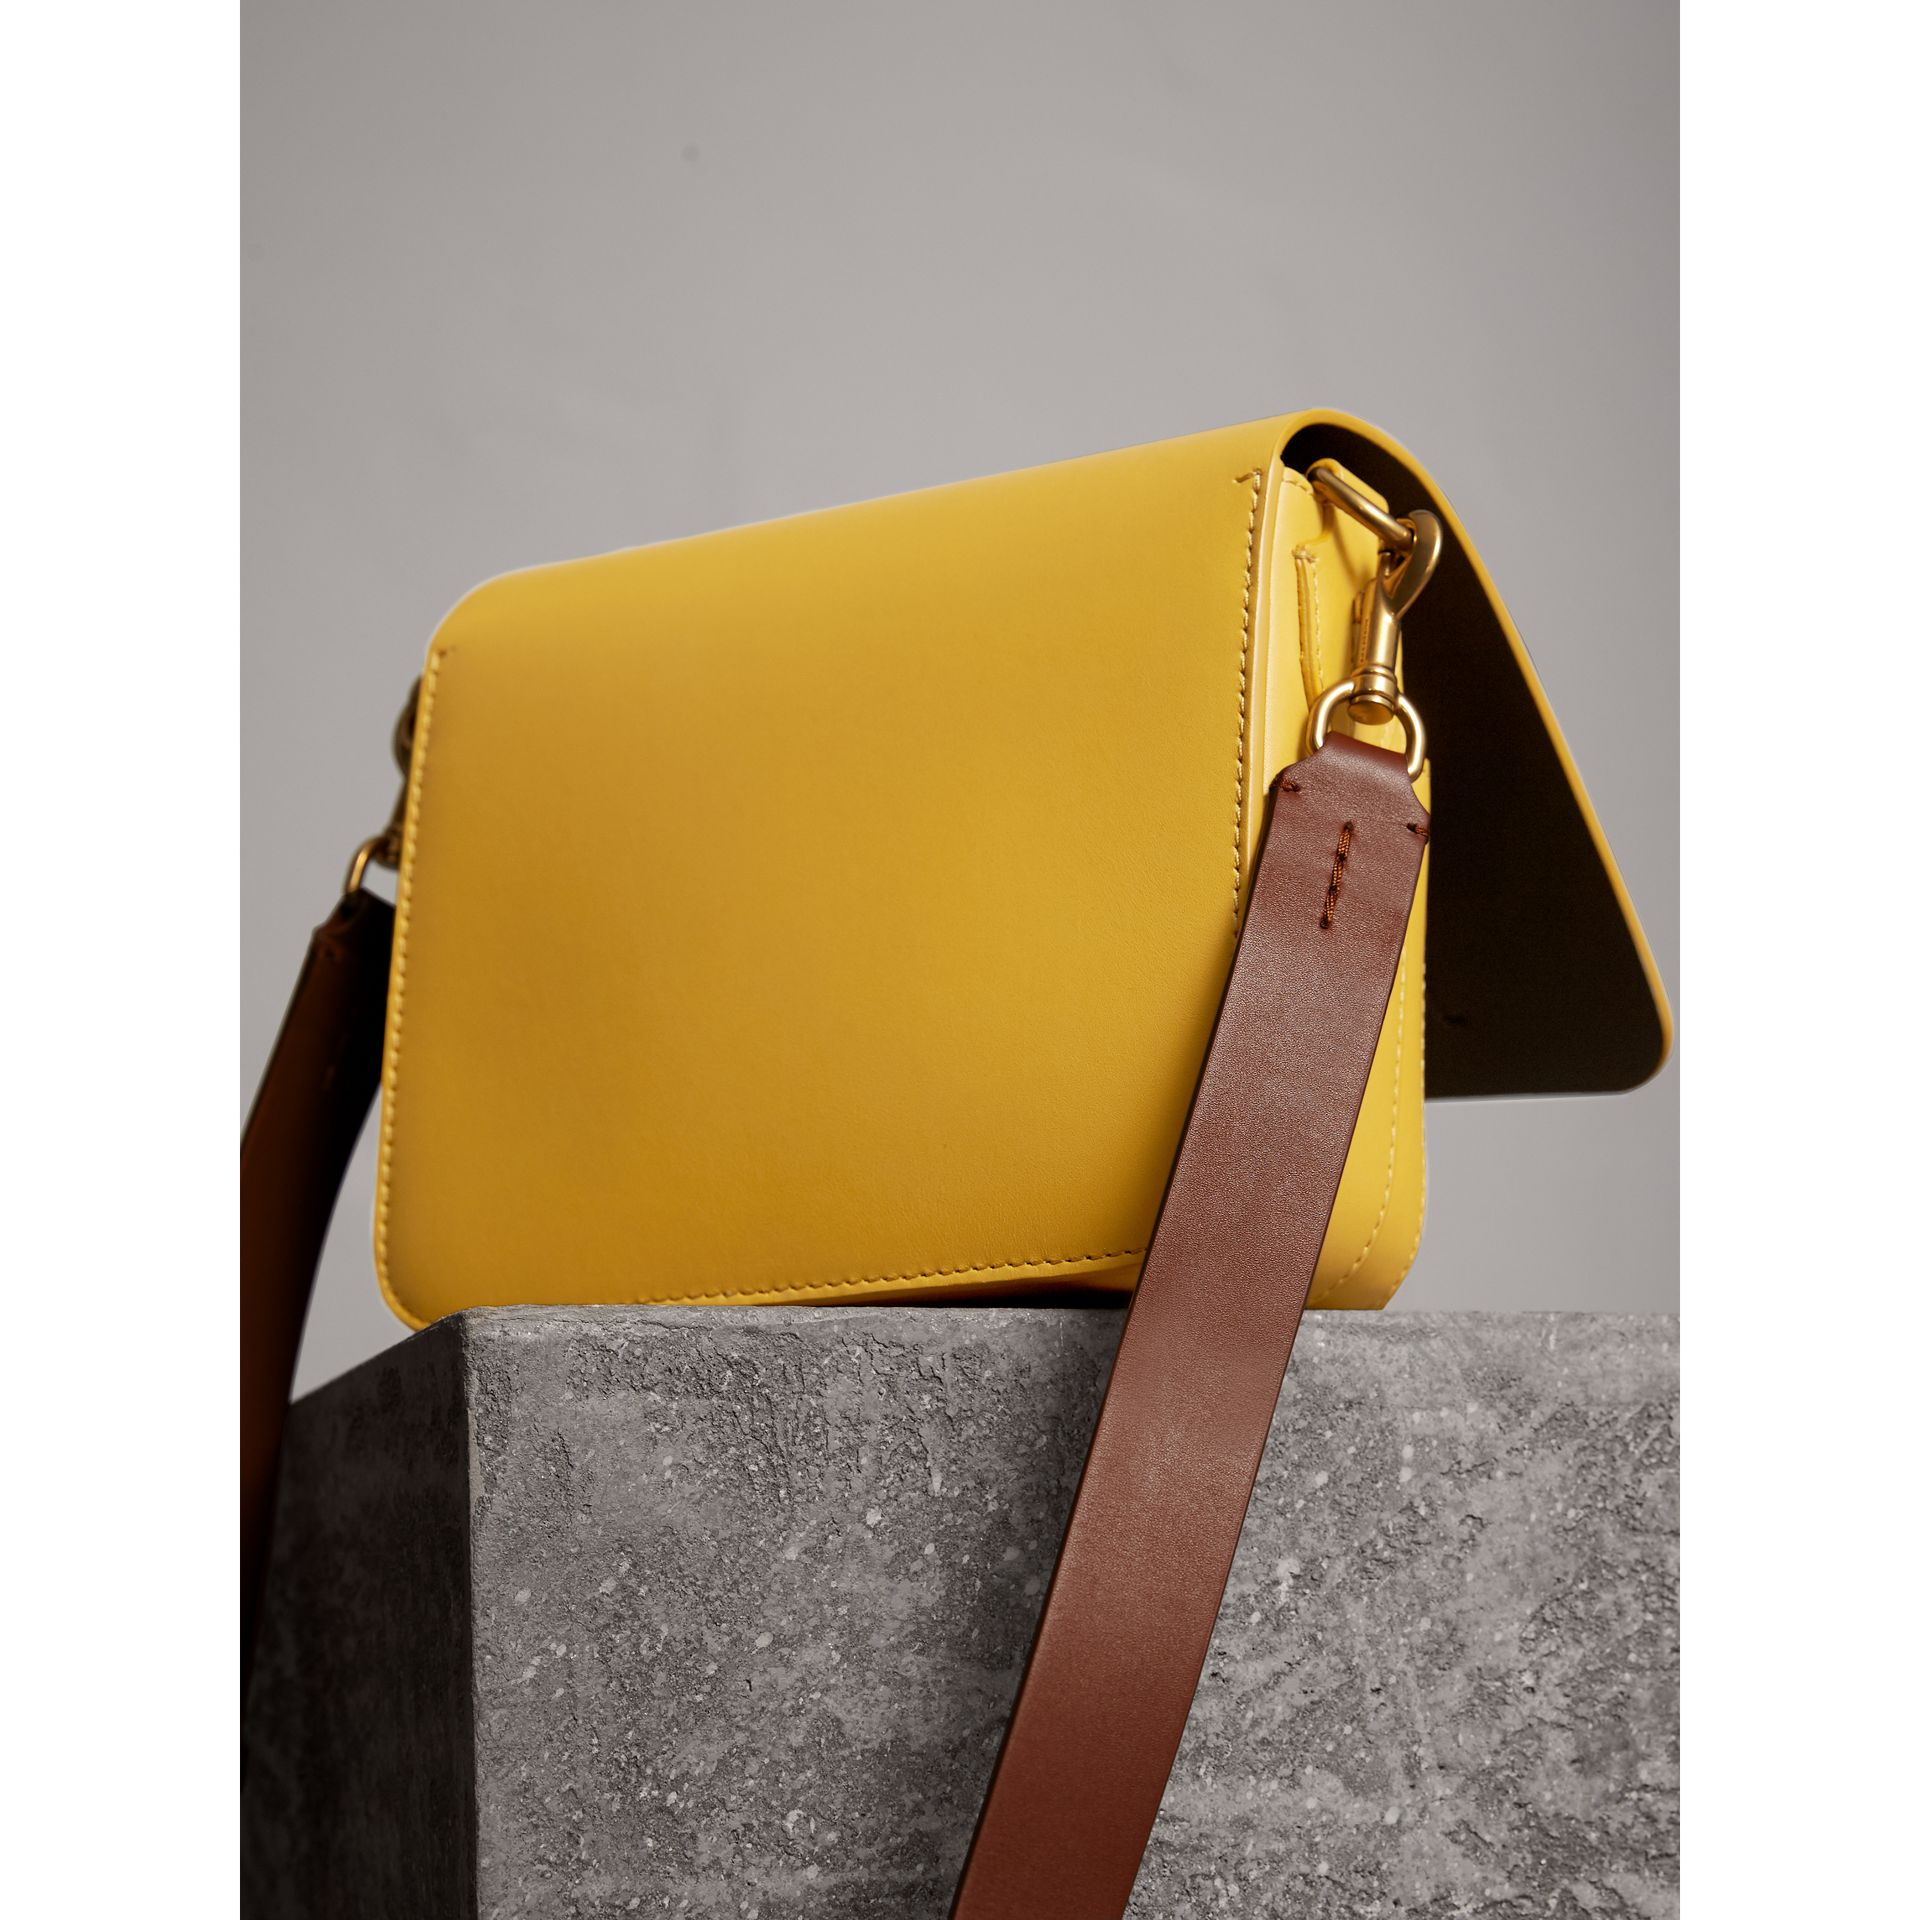 The Square Satchel in Leather in Larch Yellow - Women | Burberry Australia - gallery image 4